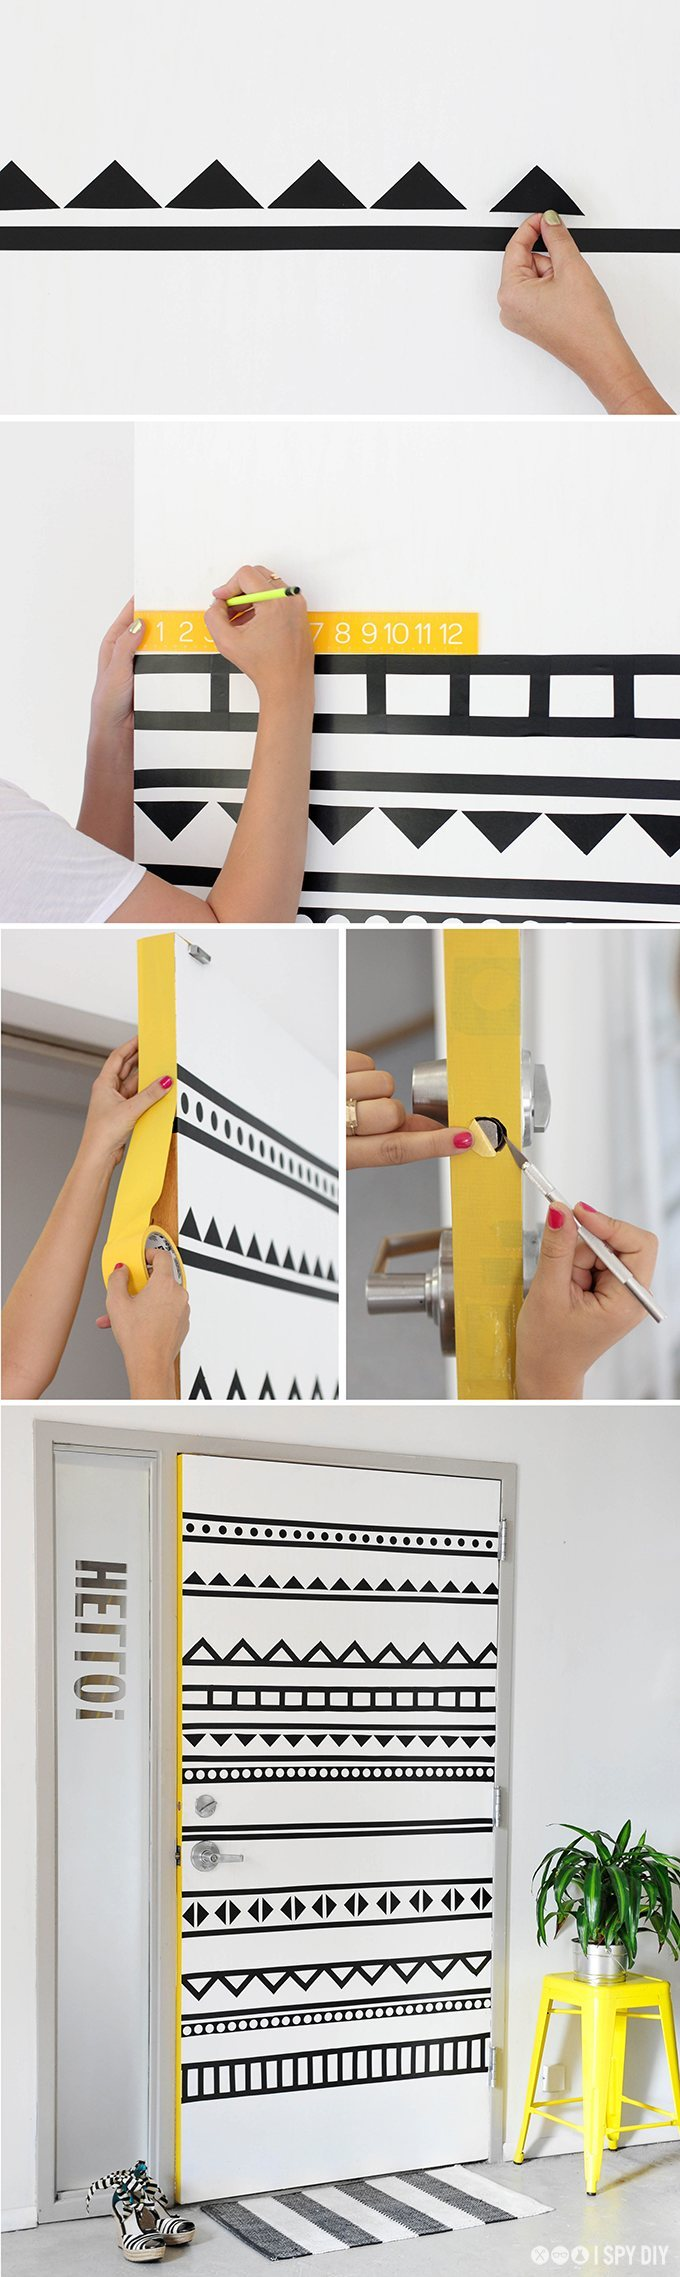 DIY Door Decorating